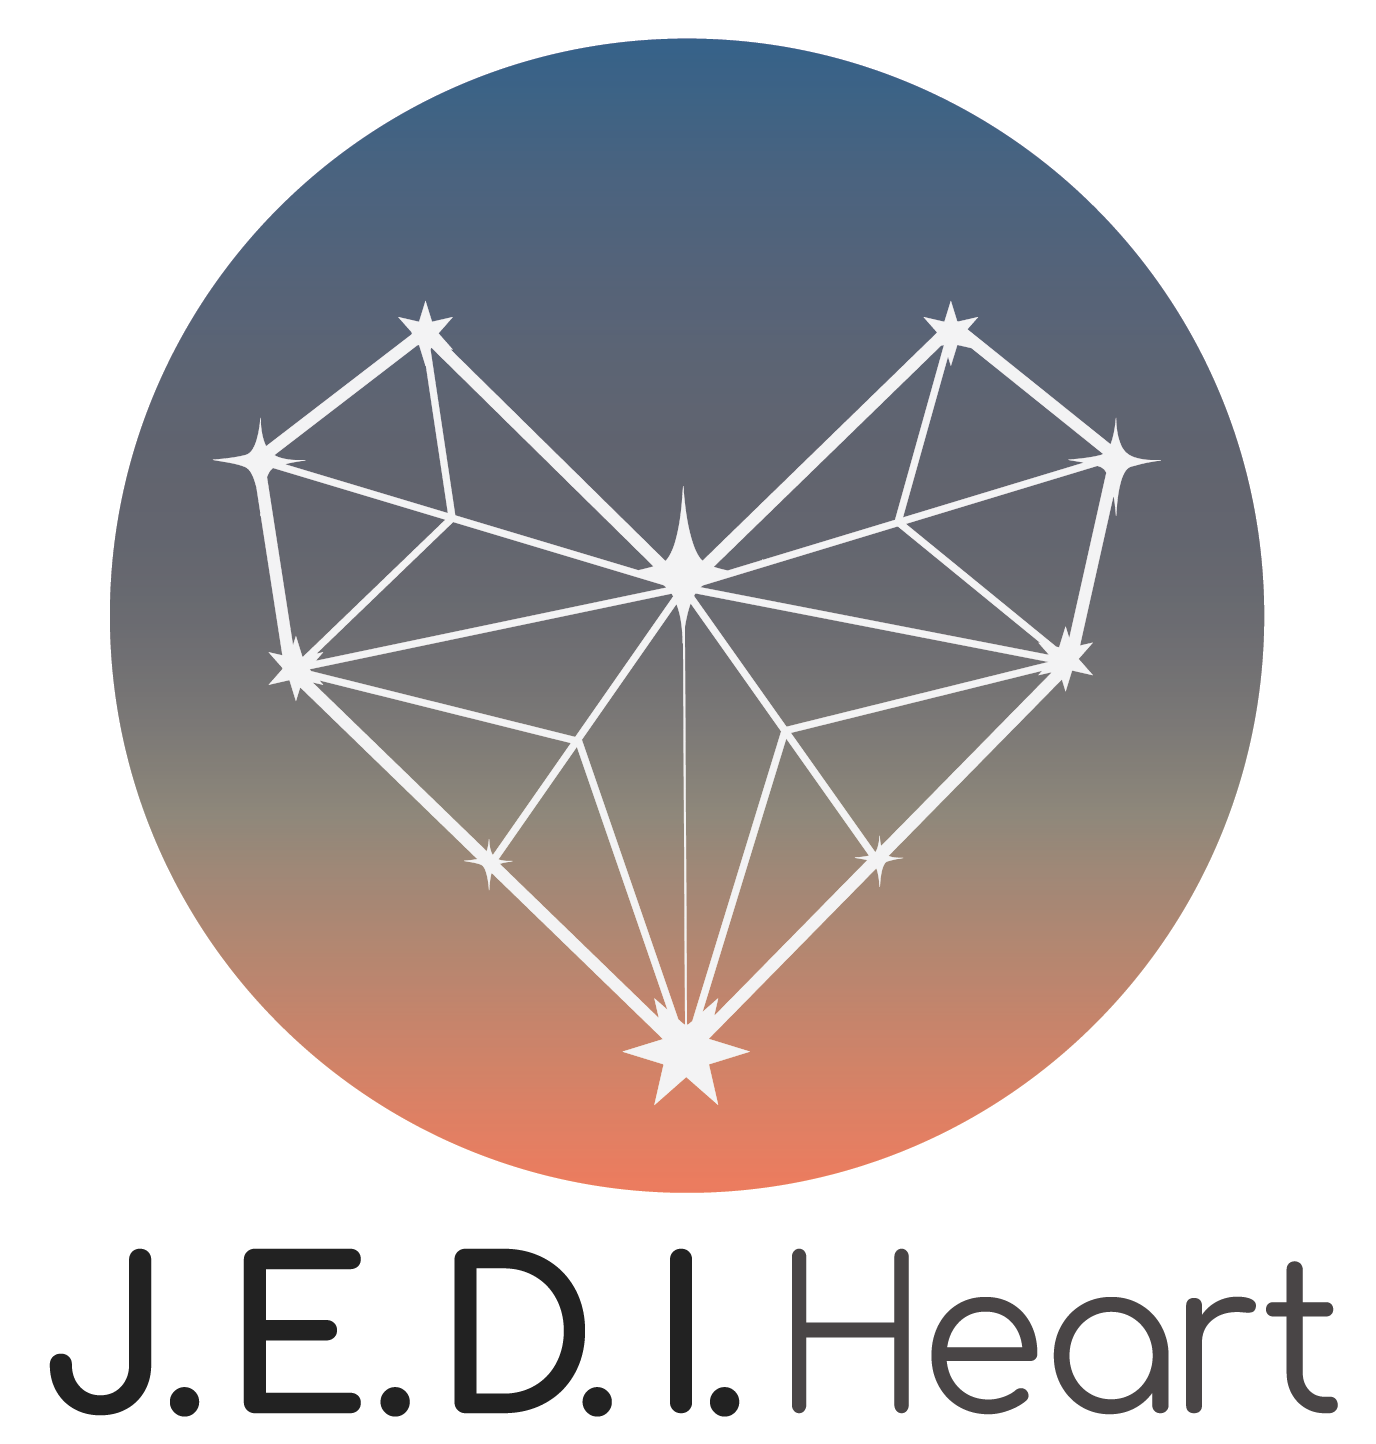 The J.E.D.I. Heart logo in name and design connects to the purpose for this blog.